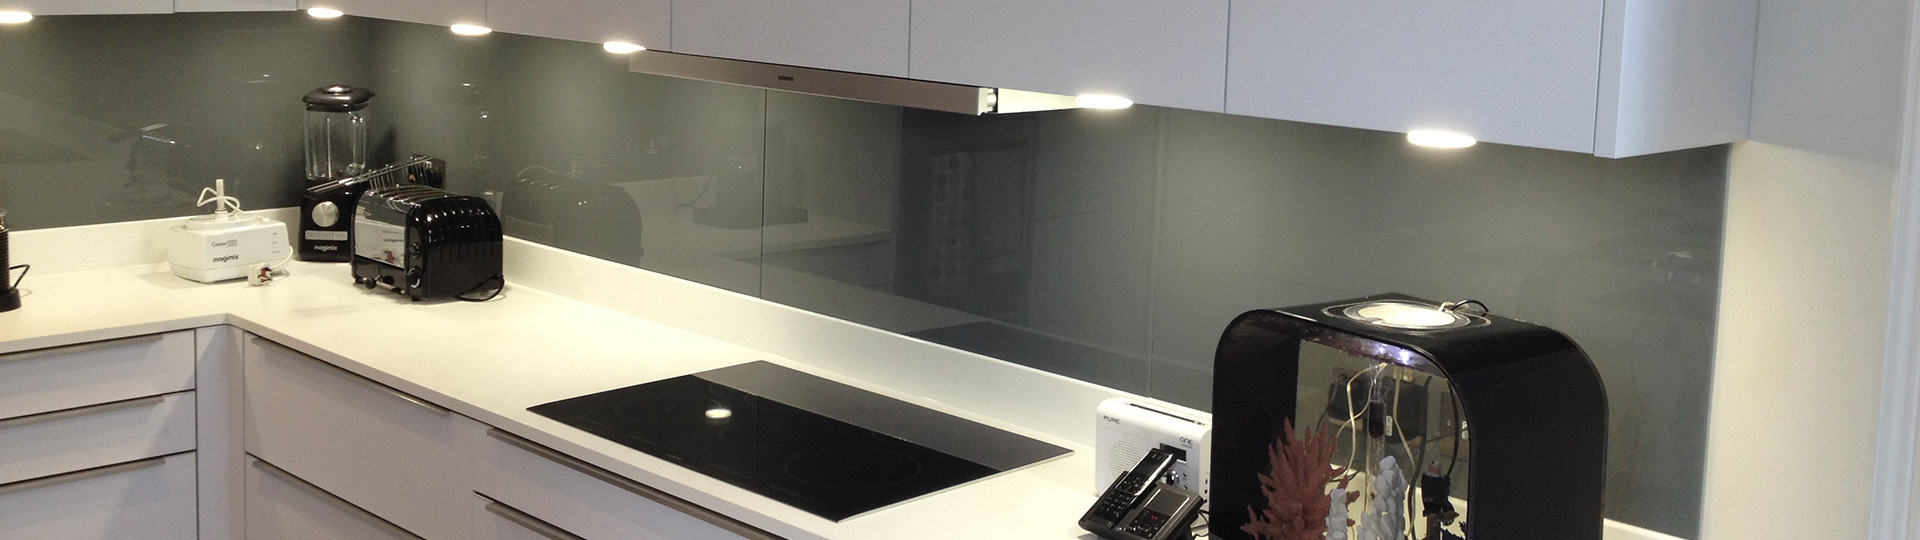 Glass Splashbacks in a kitchen